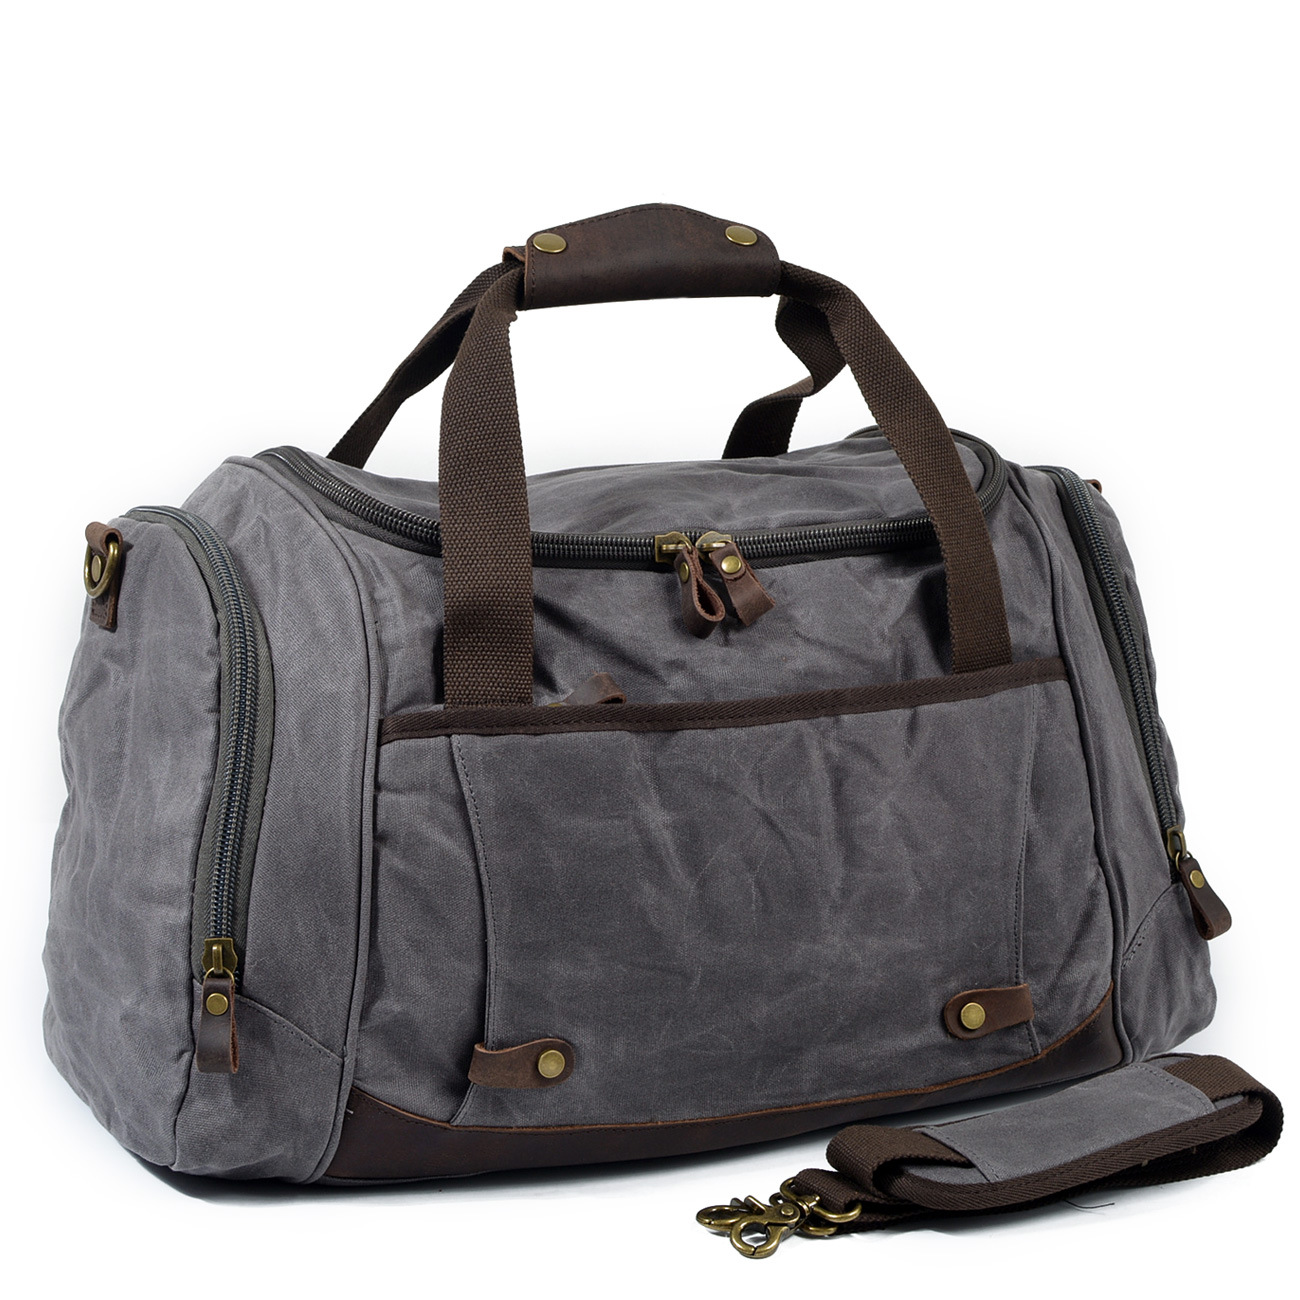 Man Waxed Canvas Leather Men Travel Bags Carry on Luggage Bags Men Duffel Bags Travel Tote Large Weekender Bag Overnight